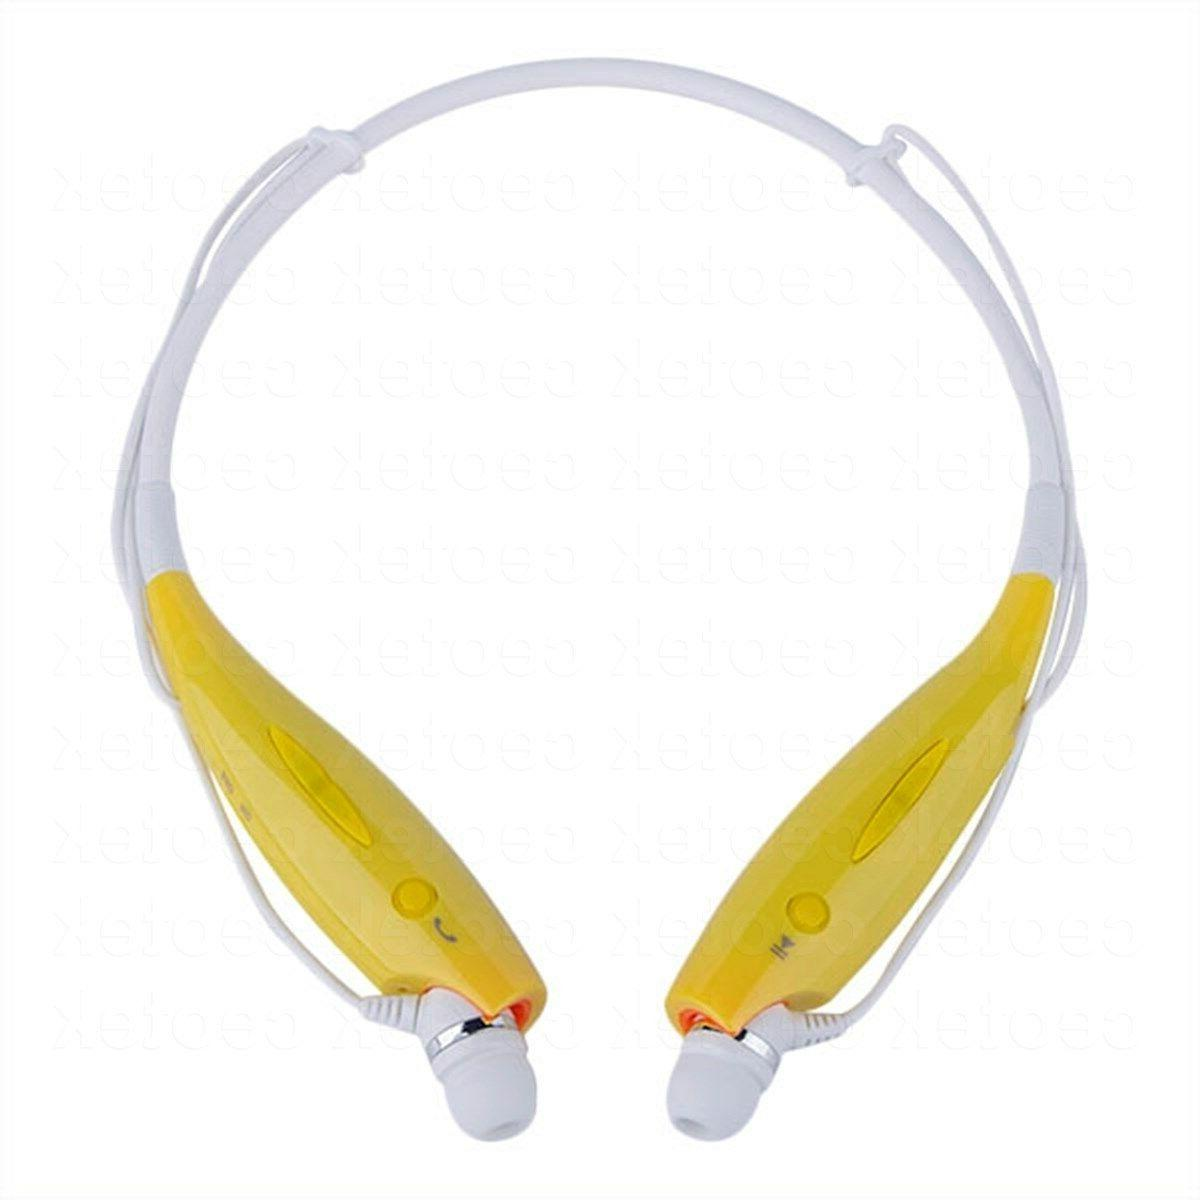 Wireless Headset Sport Universal